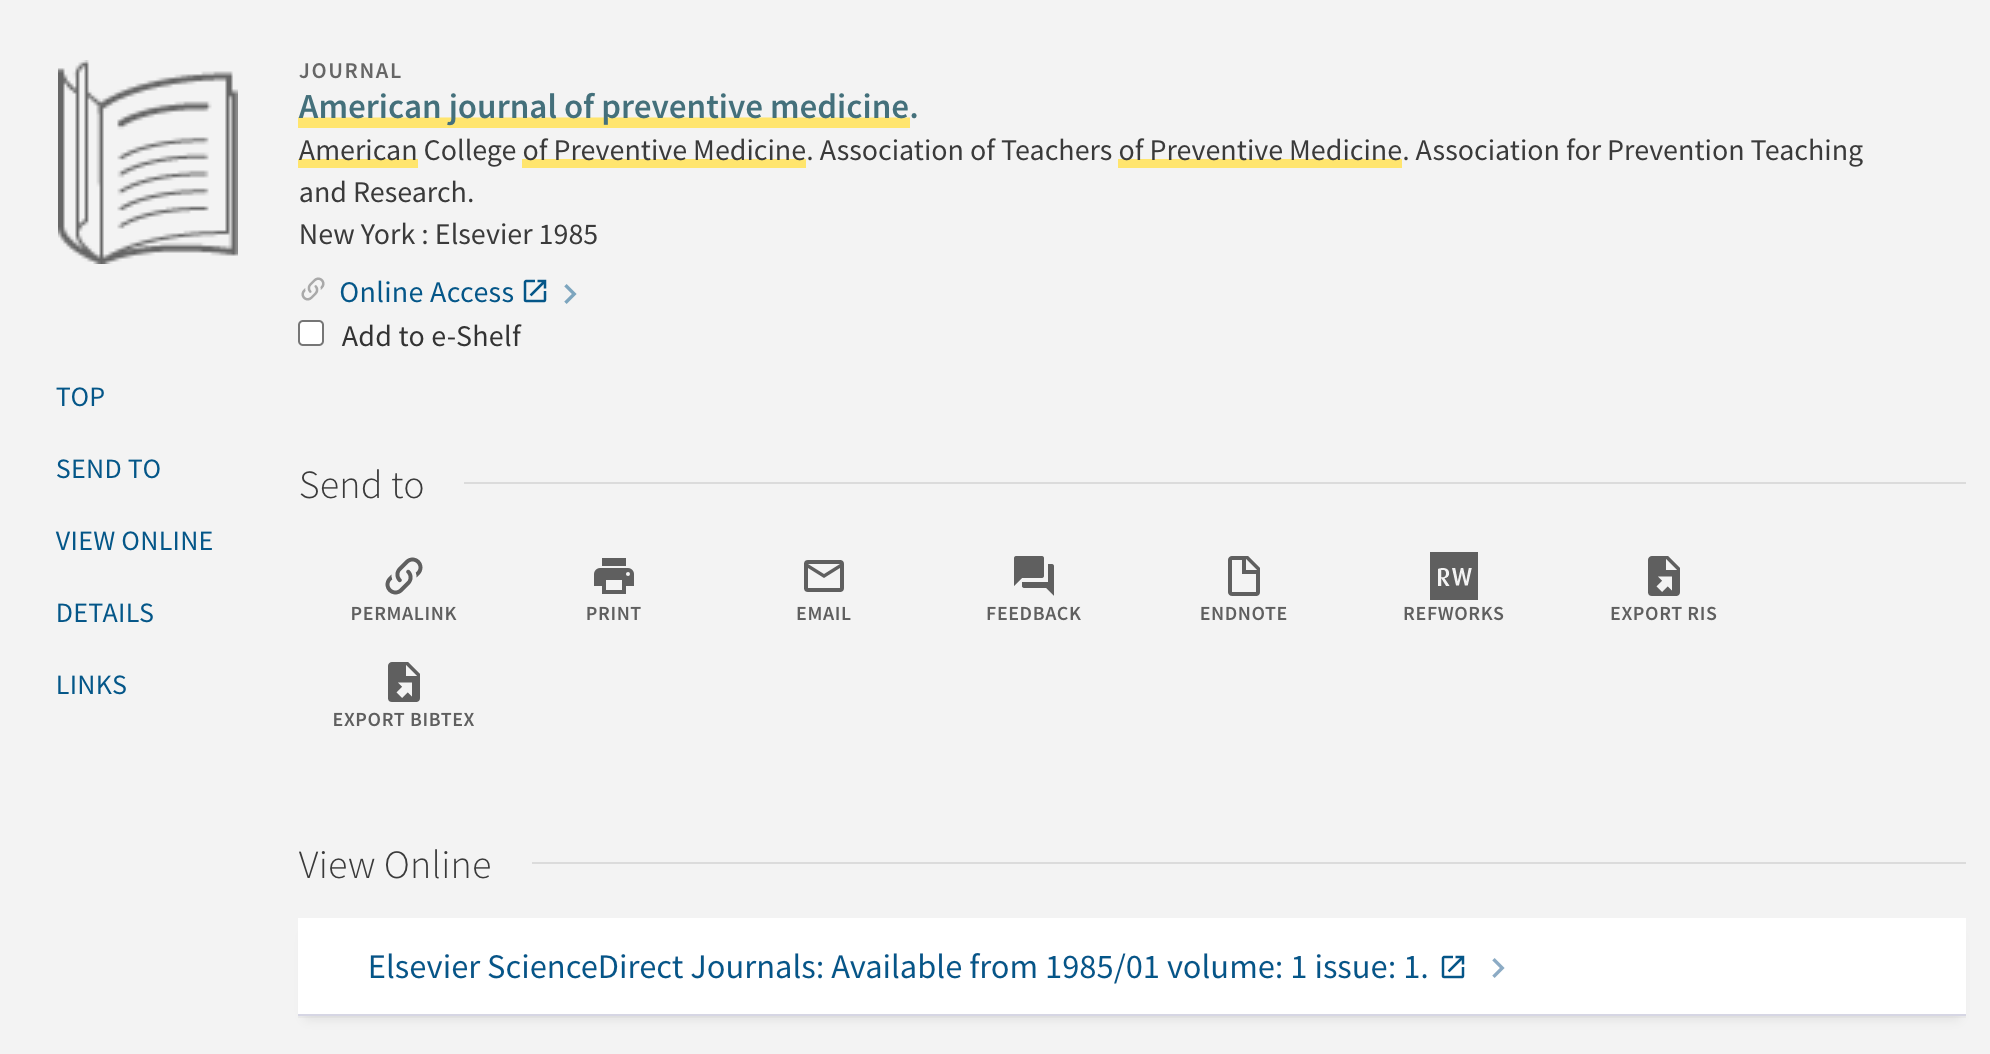 Catalog record showing Online Access for the American Journal of Preventive Medicine